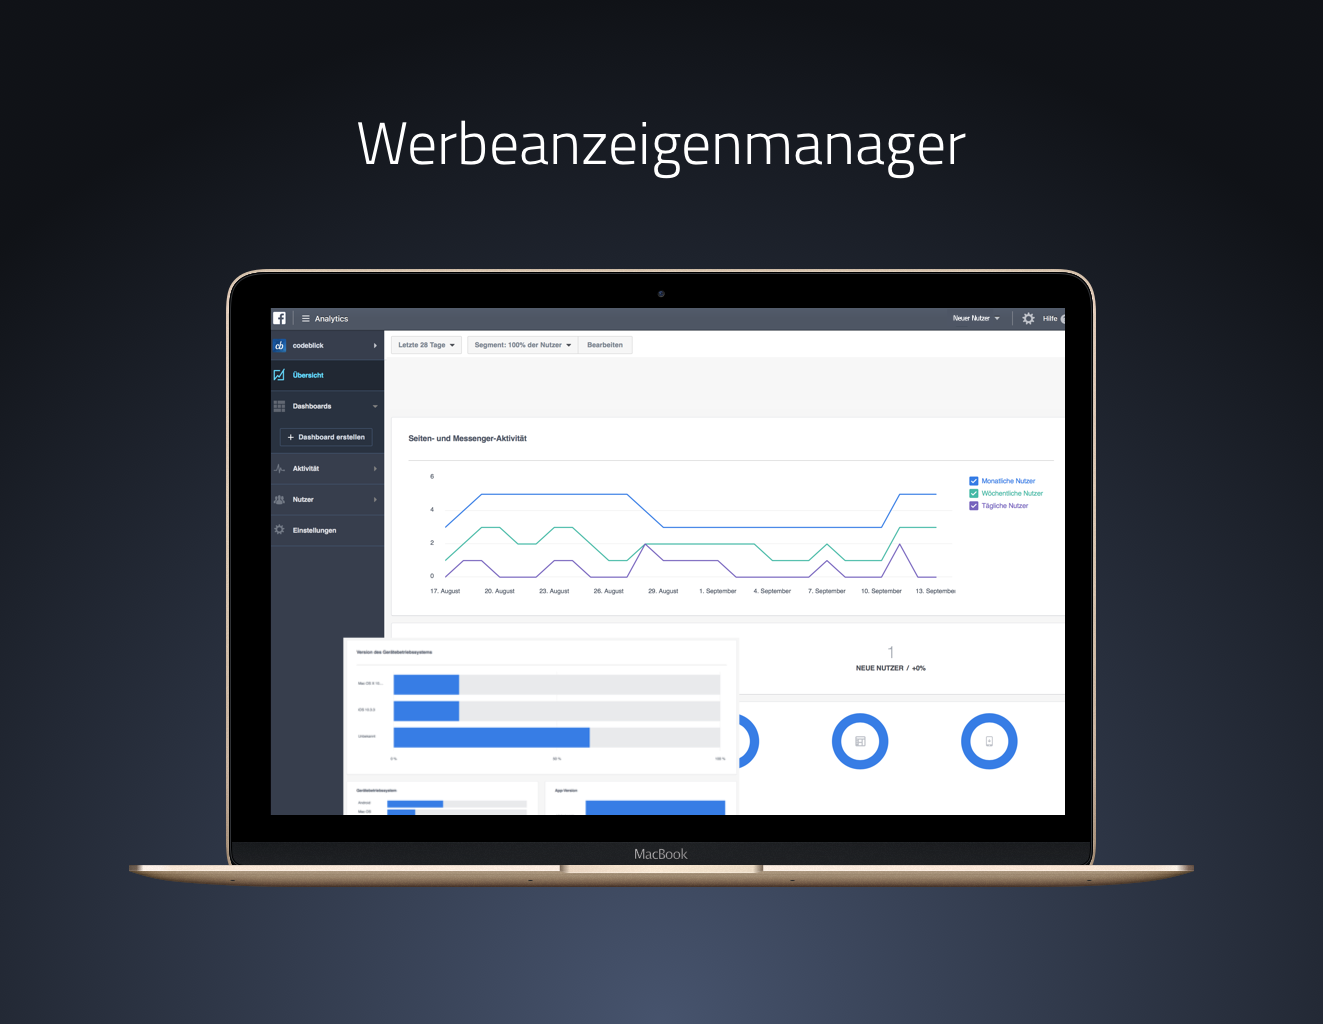 Social-Media-Marketing-B2B-Werbeanzeigenmanager